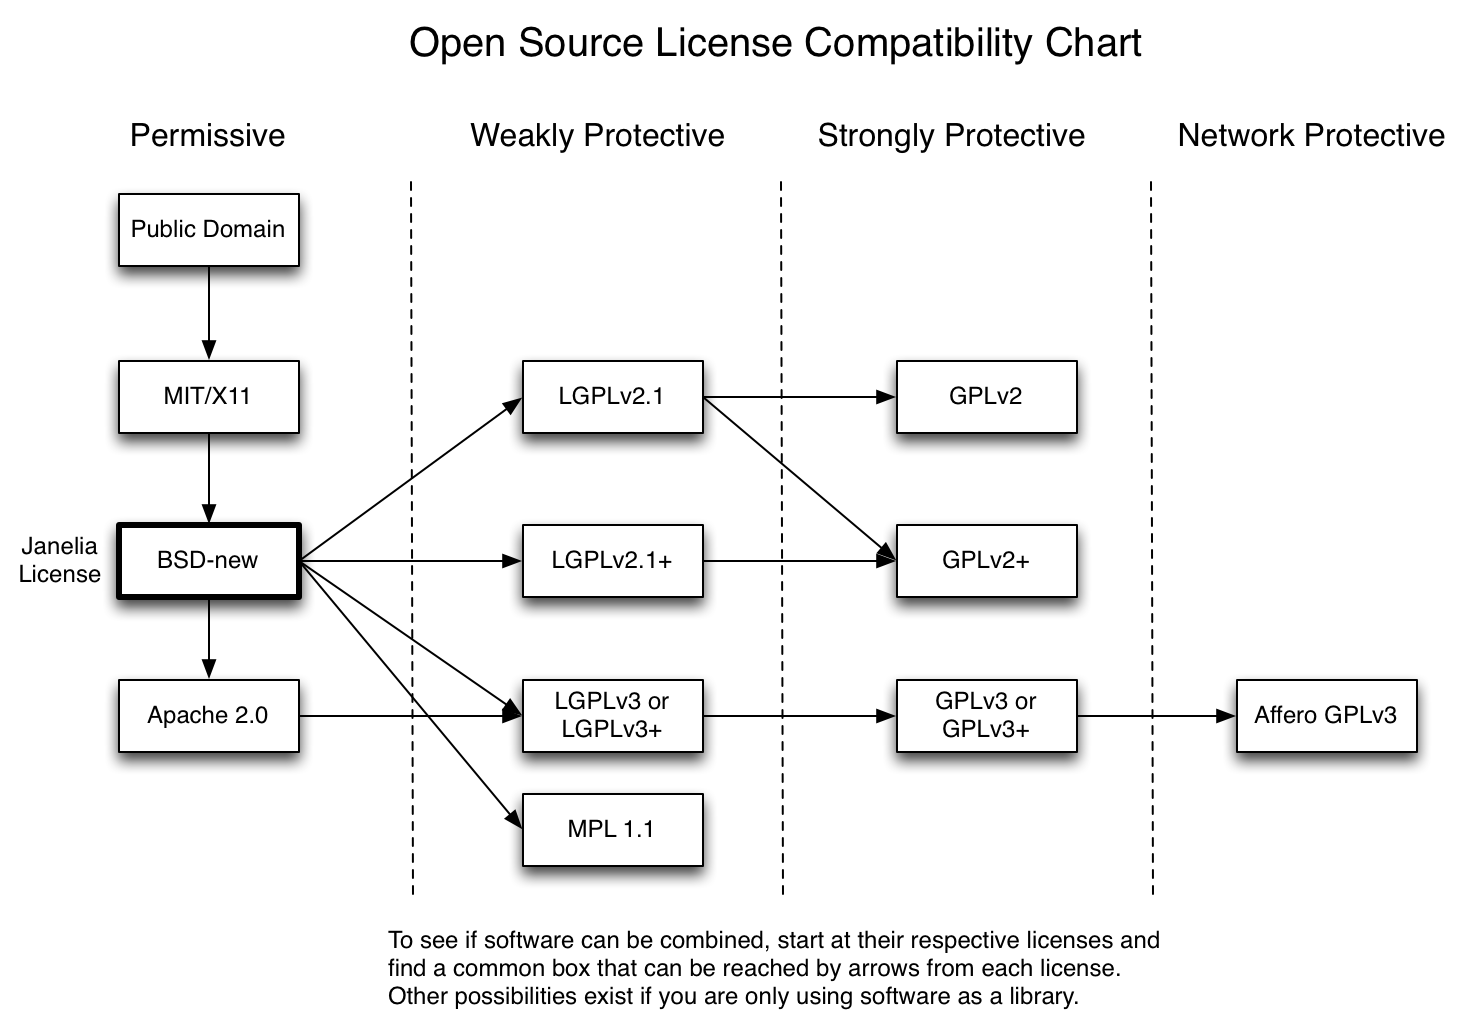 open source licenses and their compatibility